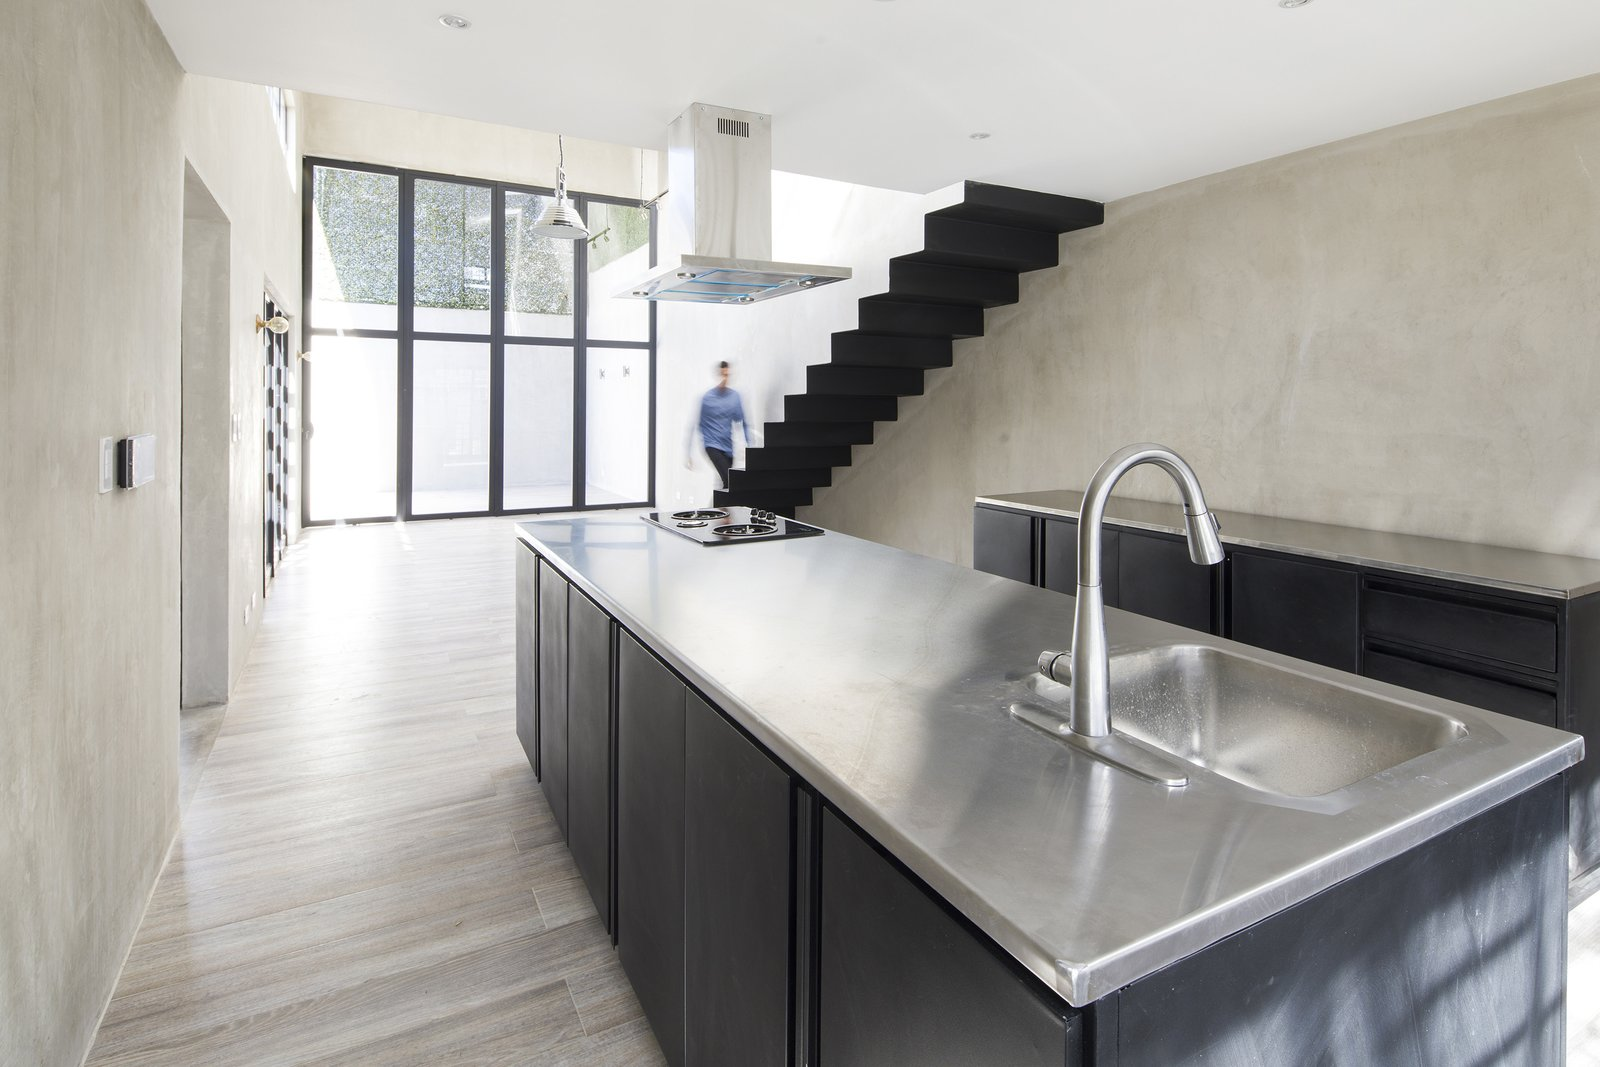 Kitchen, Metal Counter, Metal Cabinet, Porcelain Tile Floor, and Ceiling Lighting  Casa Ching by MG design studio